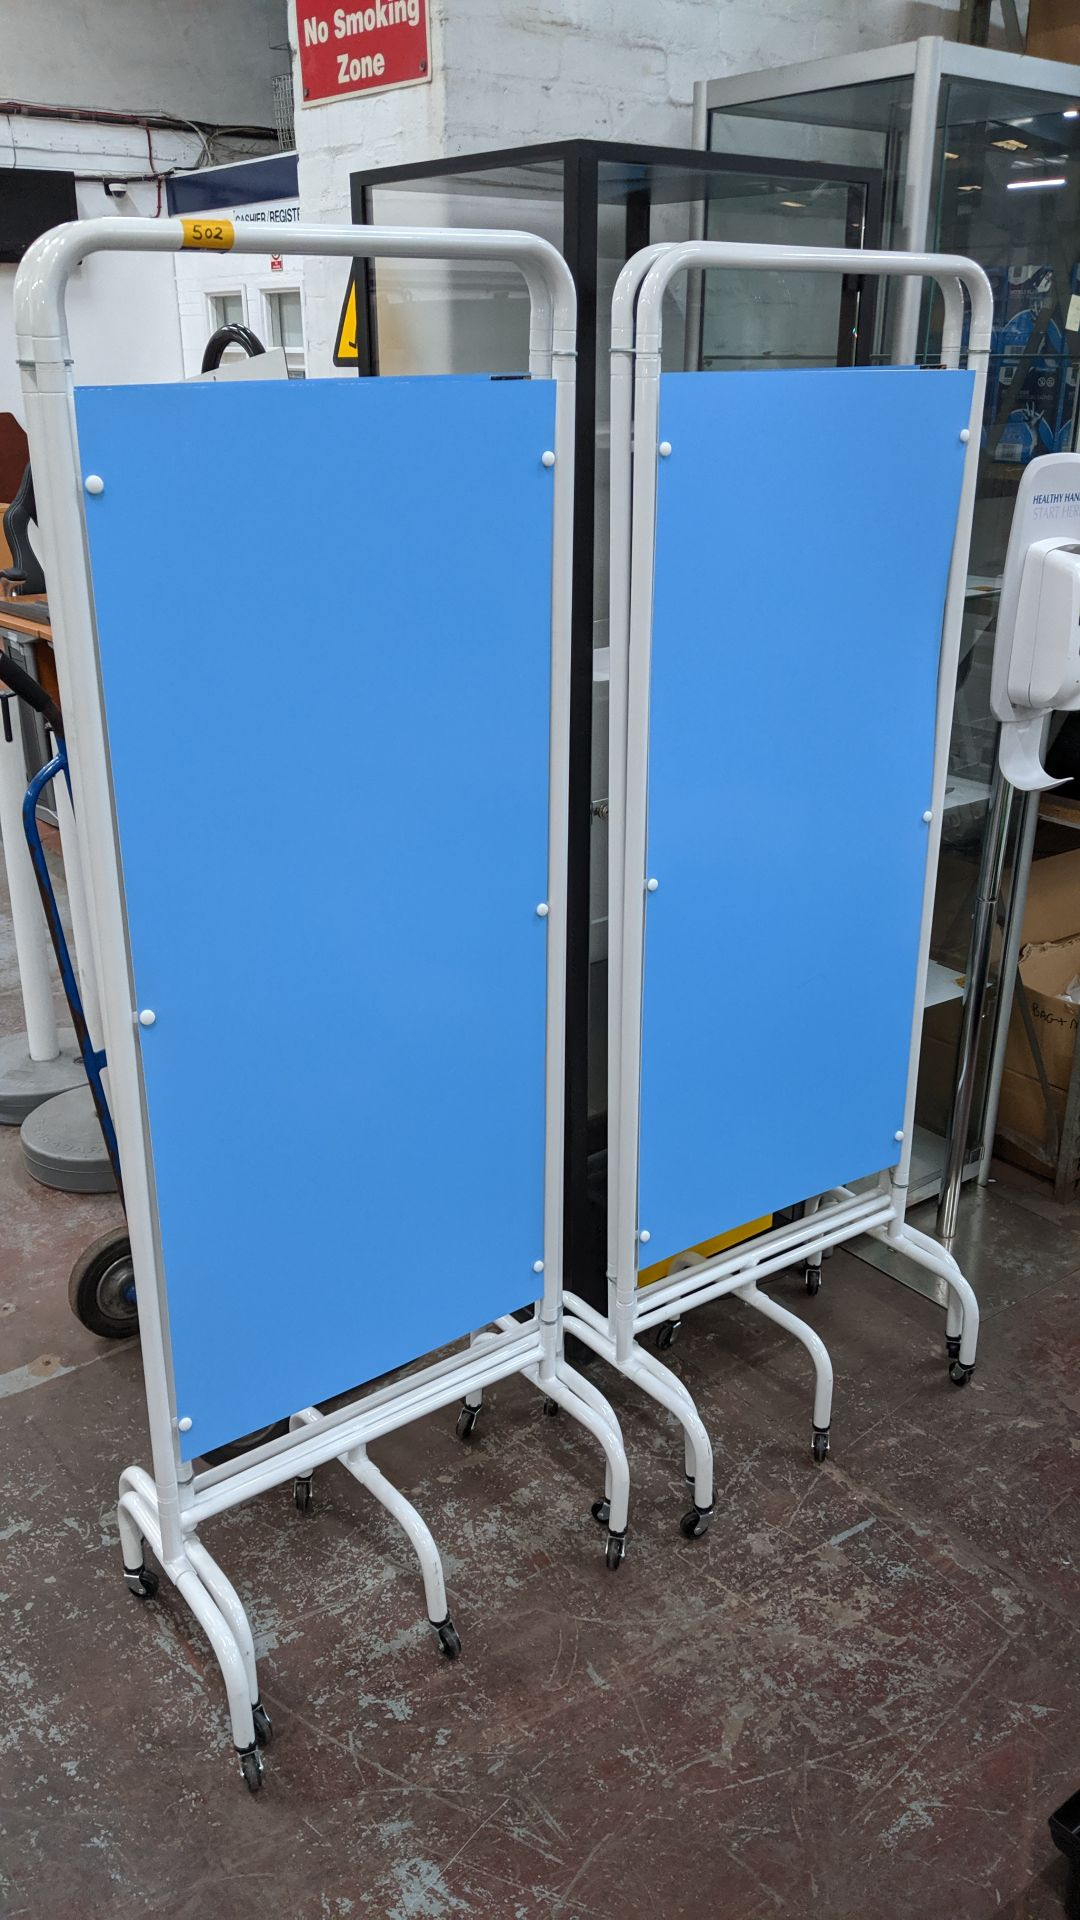 Lot 502 - 6 off Sunflower Medical Furniture mobile blue & white screens, currently assembled with connection